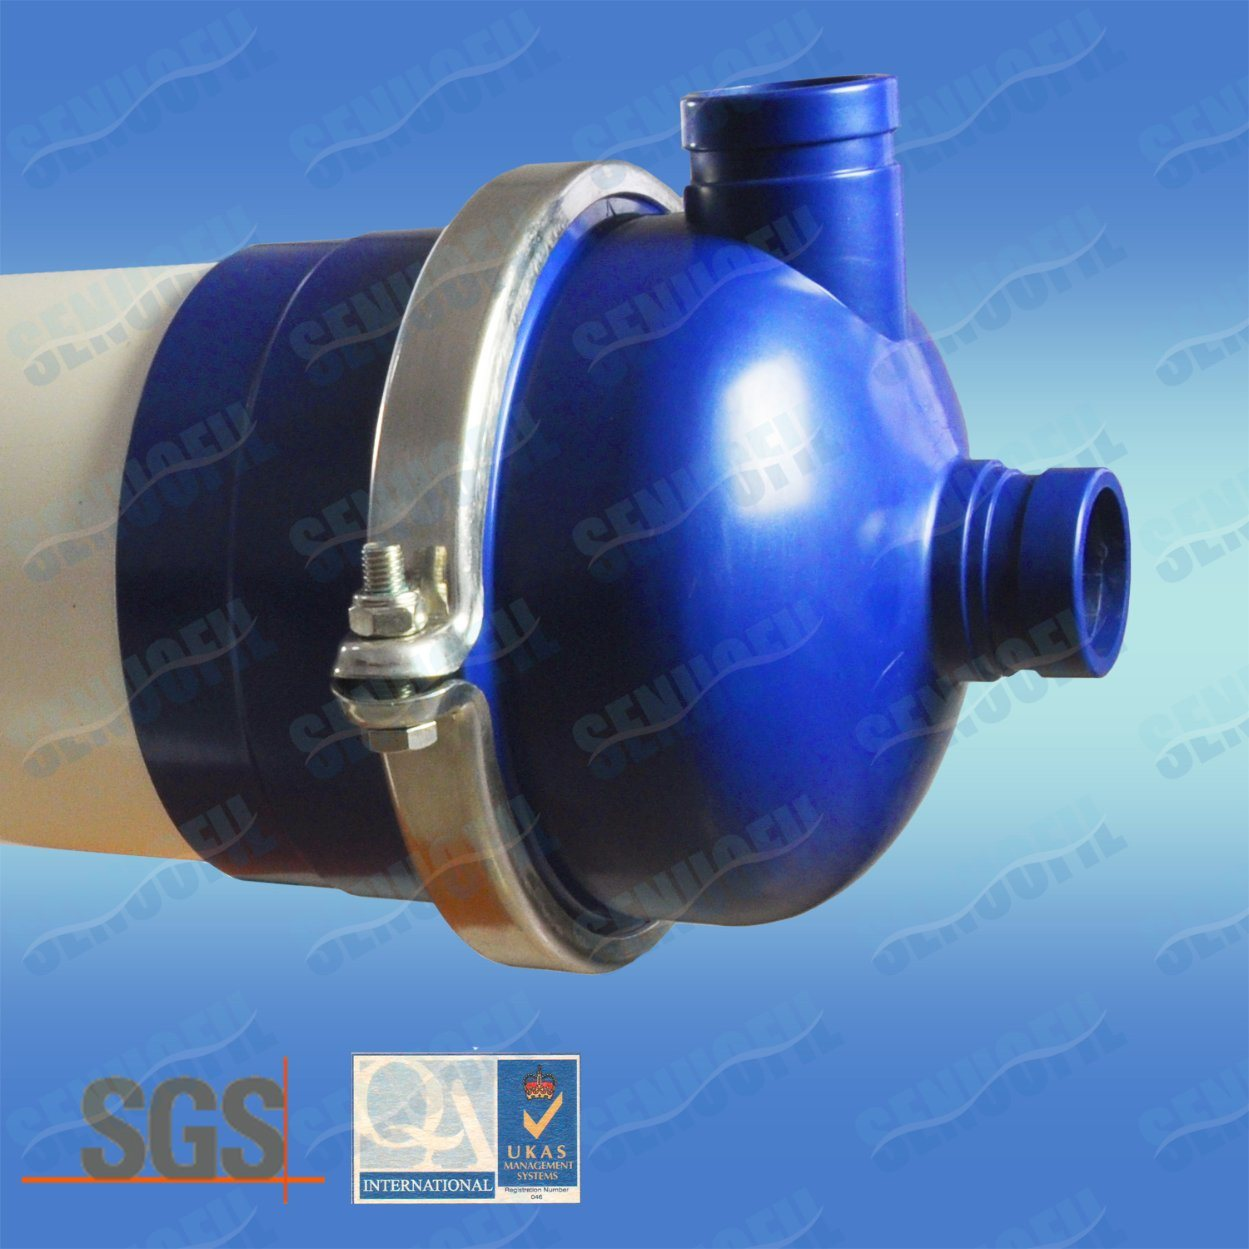 Outside-in PVDF UF Membrane Filter Housing Modules for Water Treatment